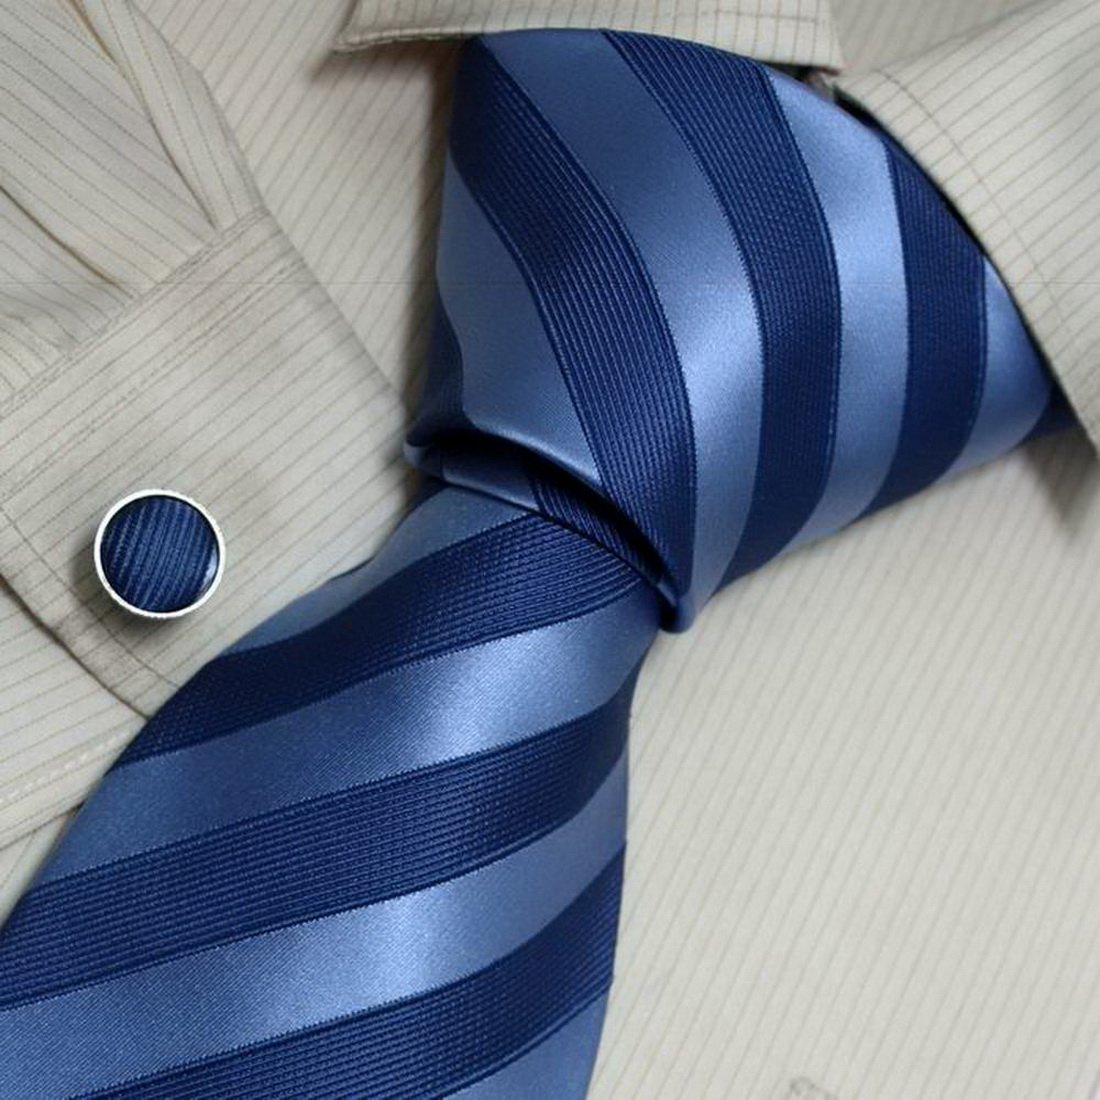 8117 Navy Striped The Future Silk Ties Cufflinks Present Box Set By Y&G by Y&G (Image #2)